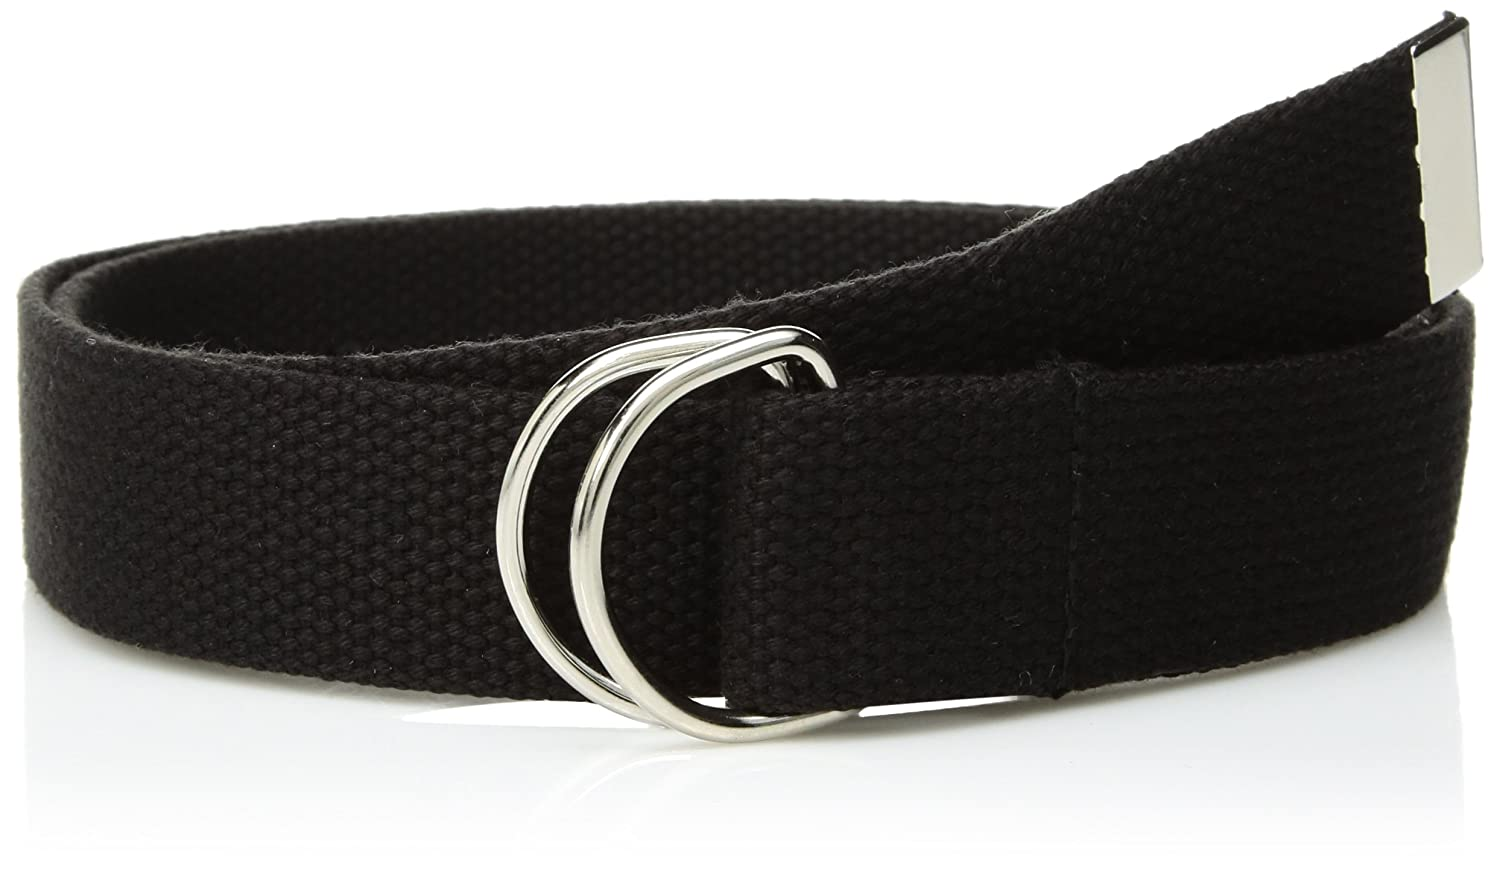 "Canvas Web Belt Double D Ring Buckle 1.5"" Wide With Metal Tip Solid Color by Bc Belts"